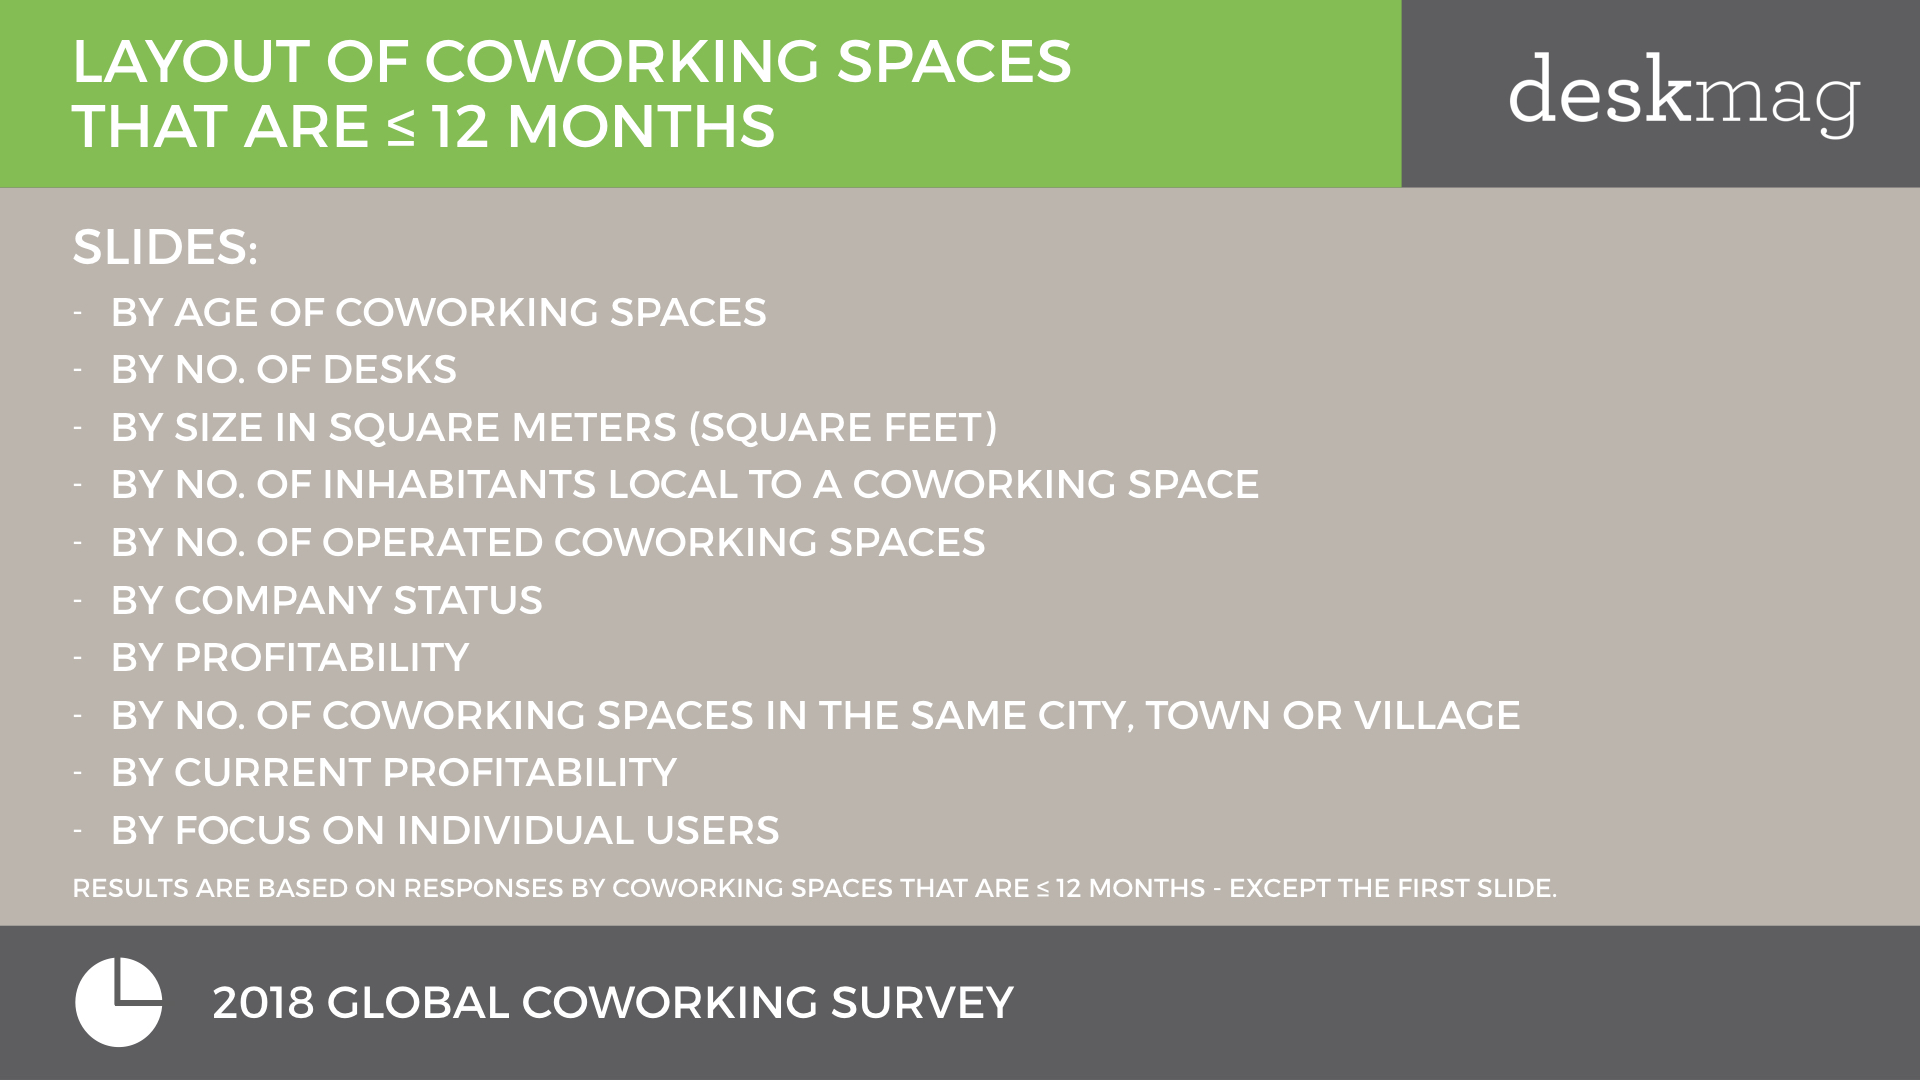 2018 GCS - OPENING COWORKING SPACES.104.jpeg